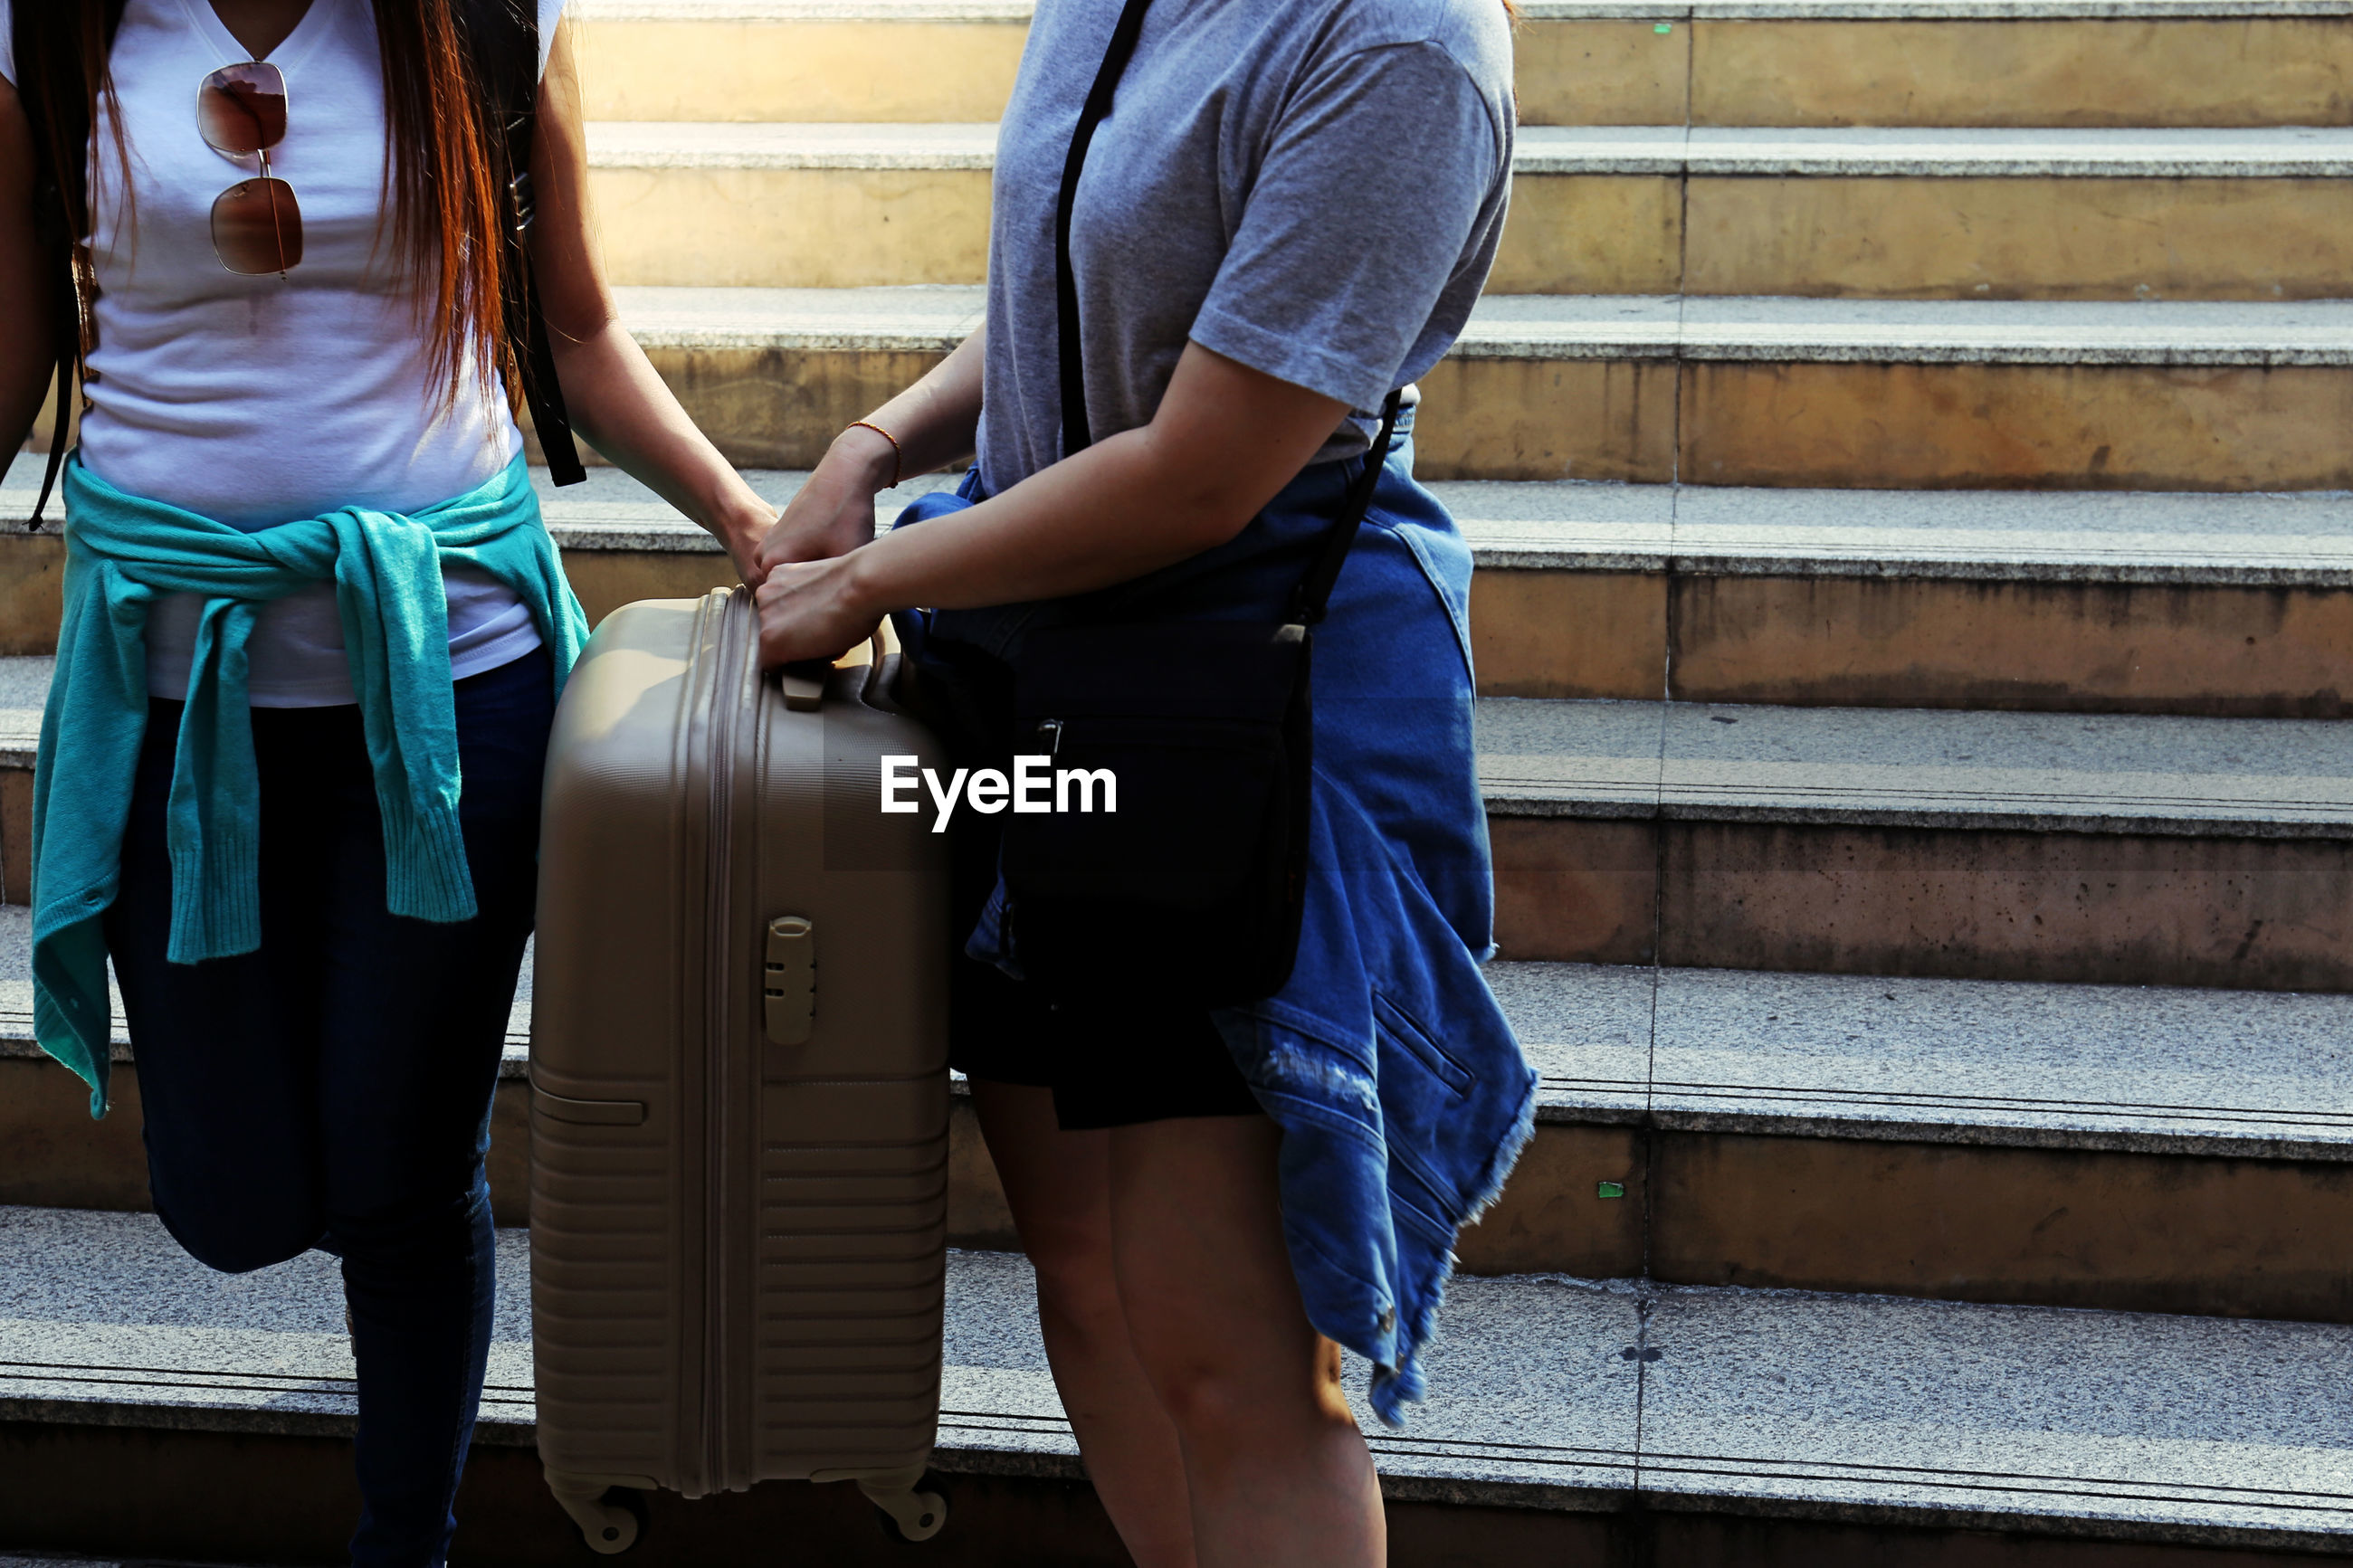 Midsection of women with luggage on steps